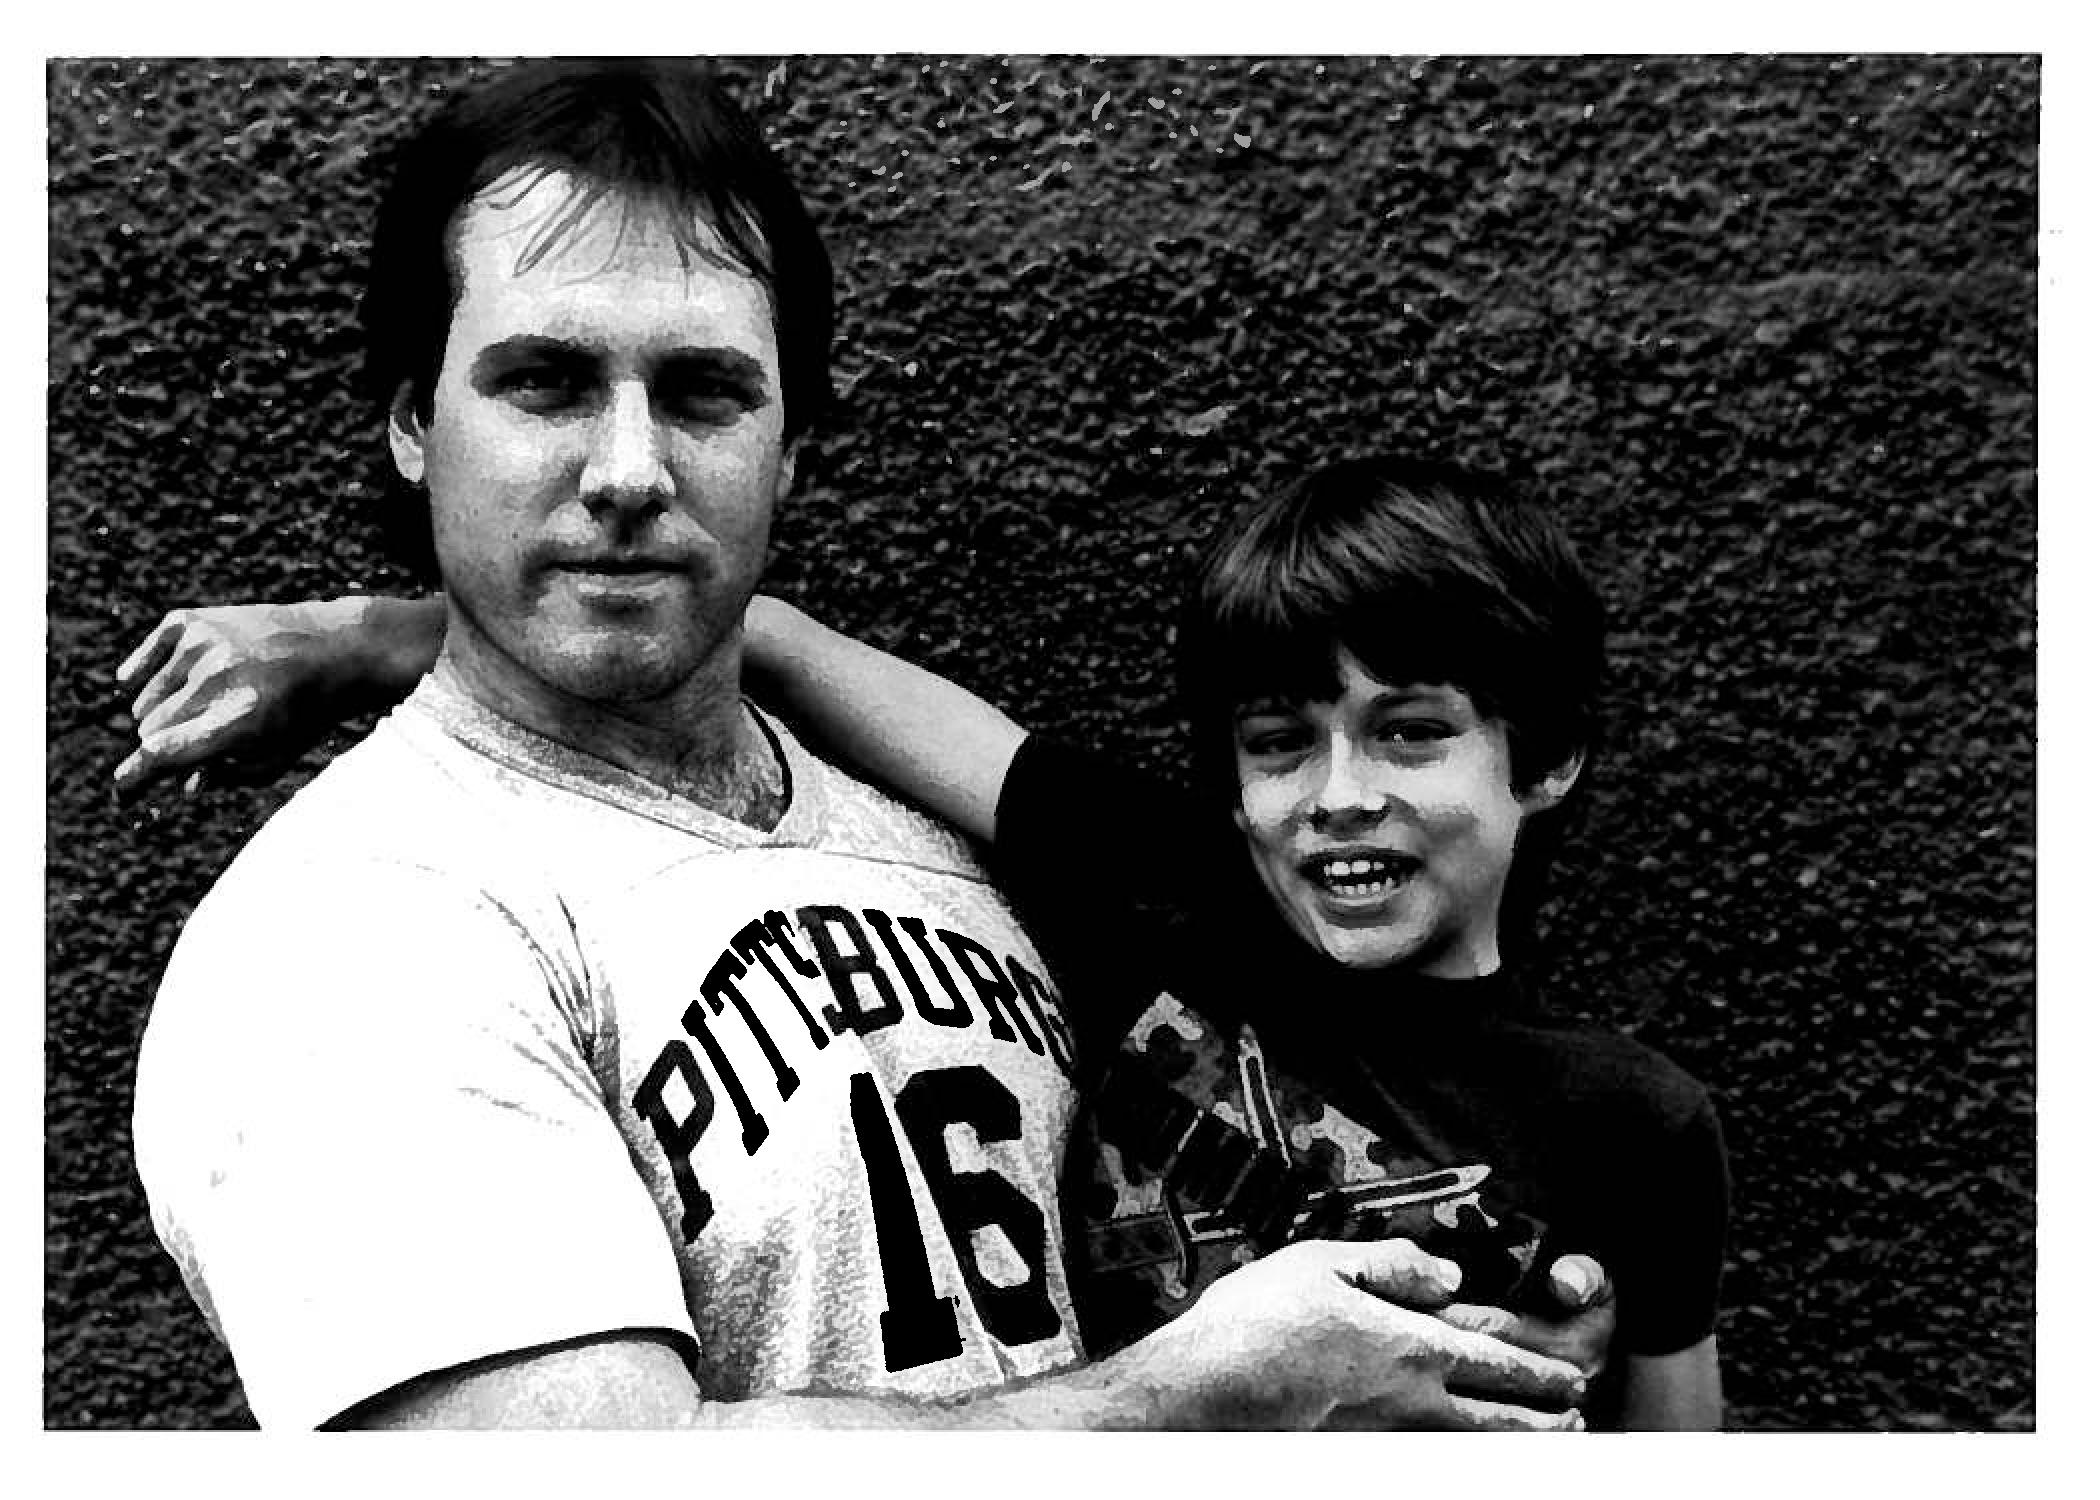 Kenny et papa-page-001.jpg